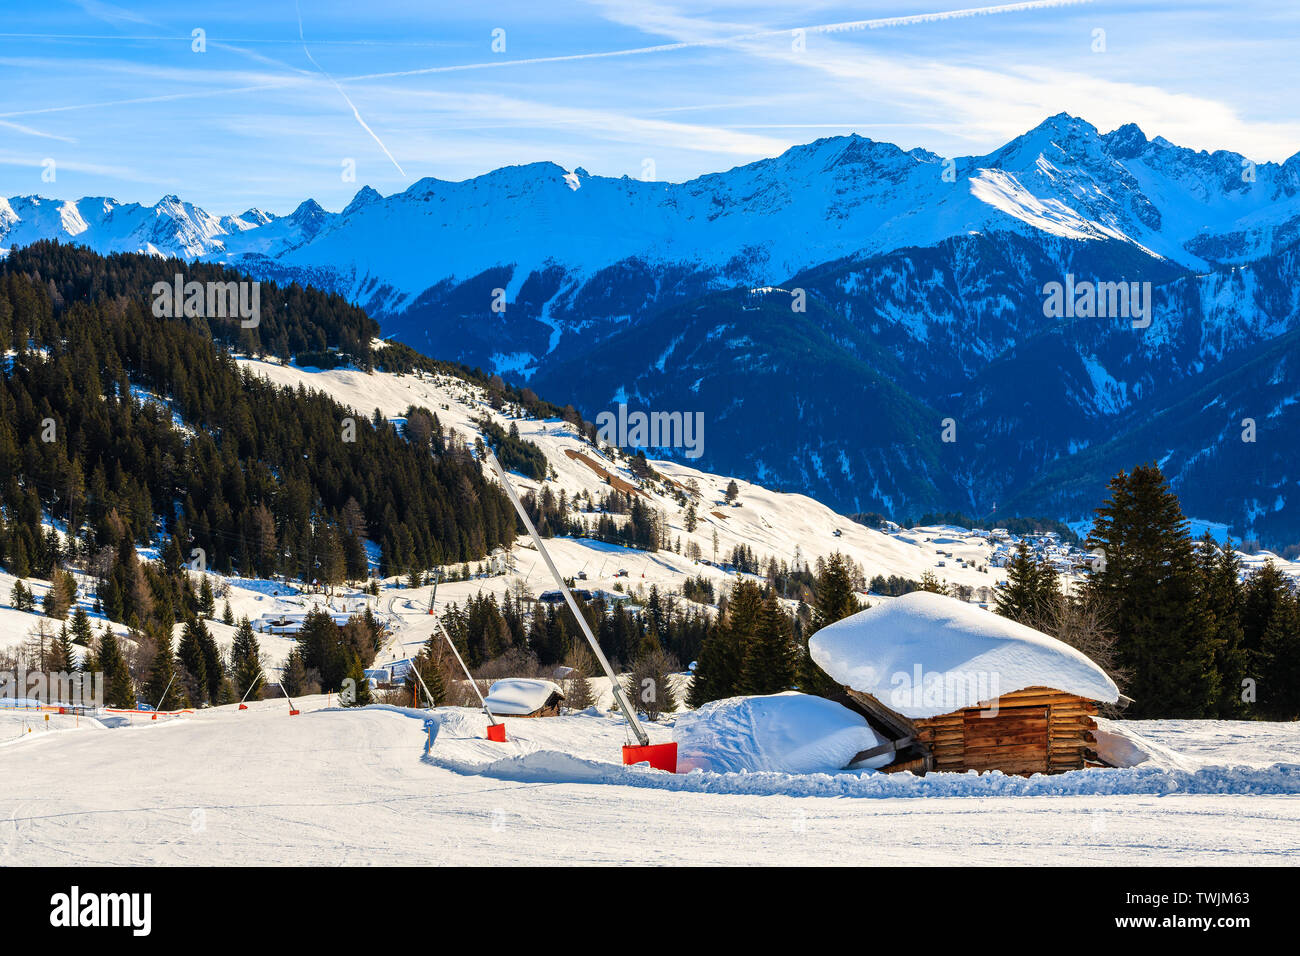 Wooden mountain hut with roof covered in snow on ski slope in Austrian Alps in beautiful winter season, Serfaus Fiss Ladis, Tirol, Austria. Stock Photo